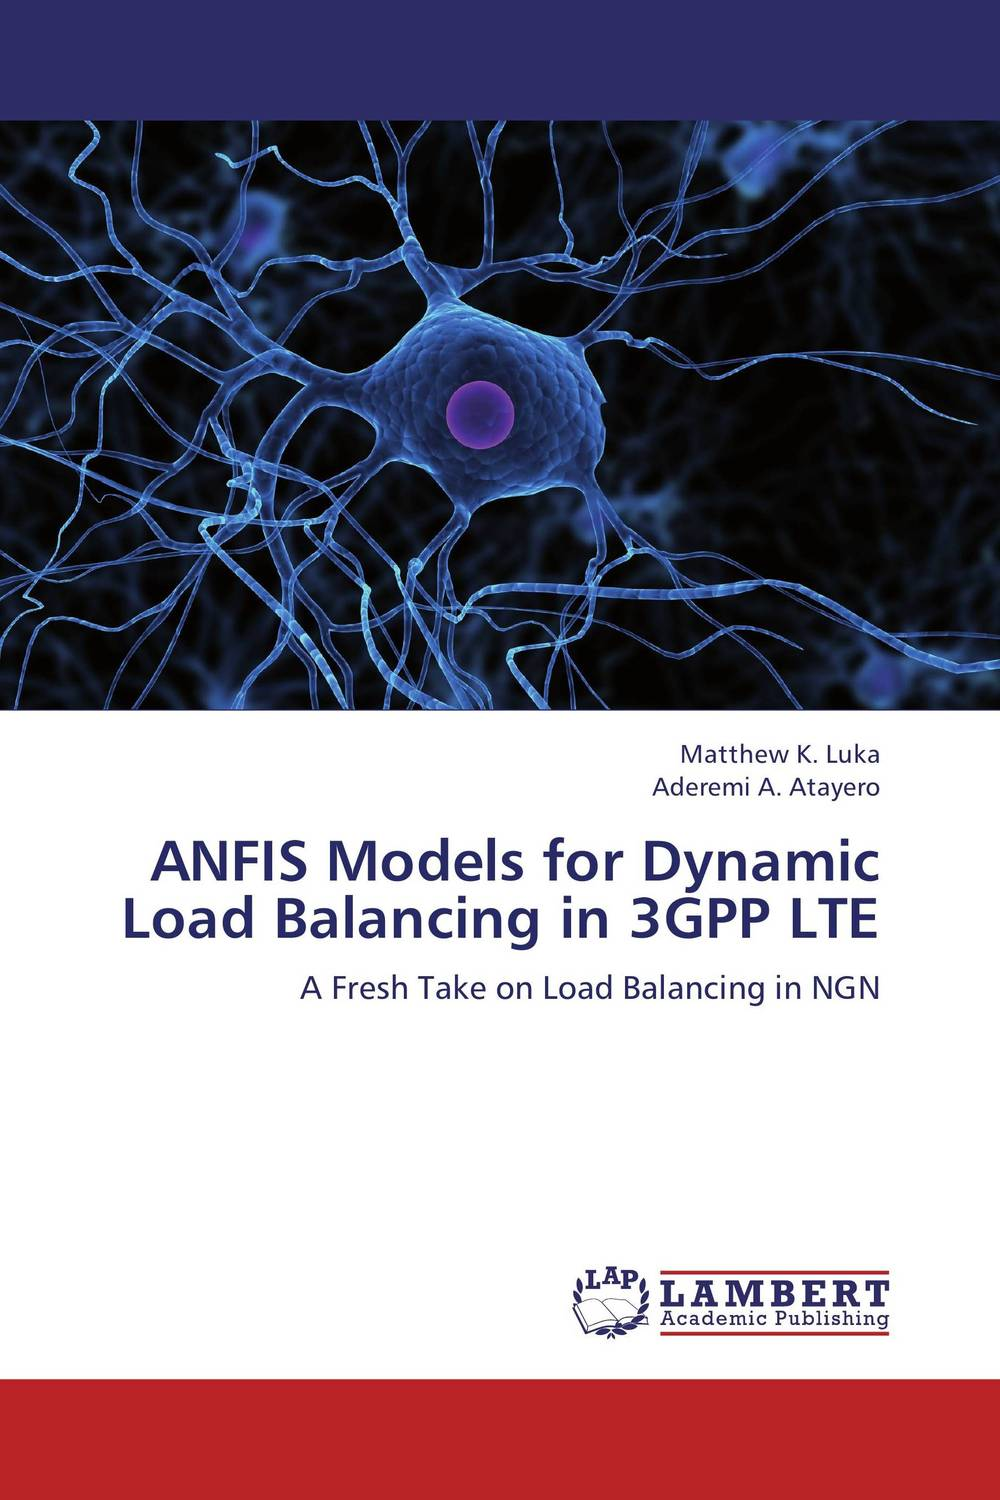 ANFIS Models for Dynamic Load Balancing in 3GPP LTE david parmenter key performance indicators developing implementing and using winning kpis